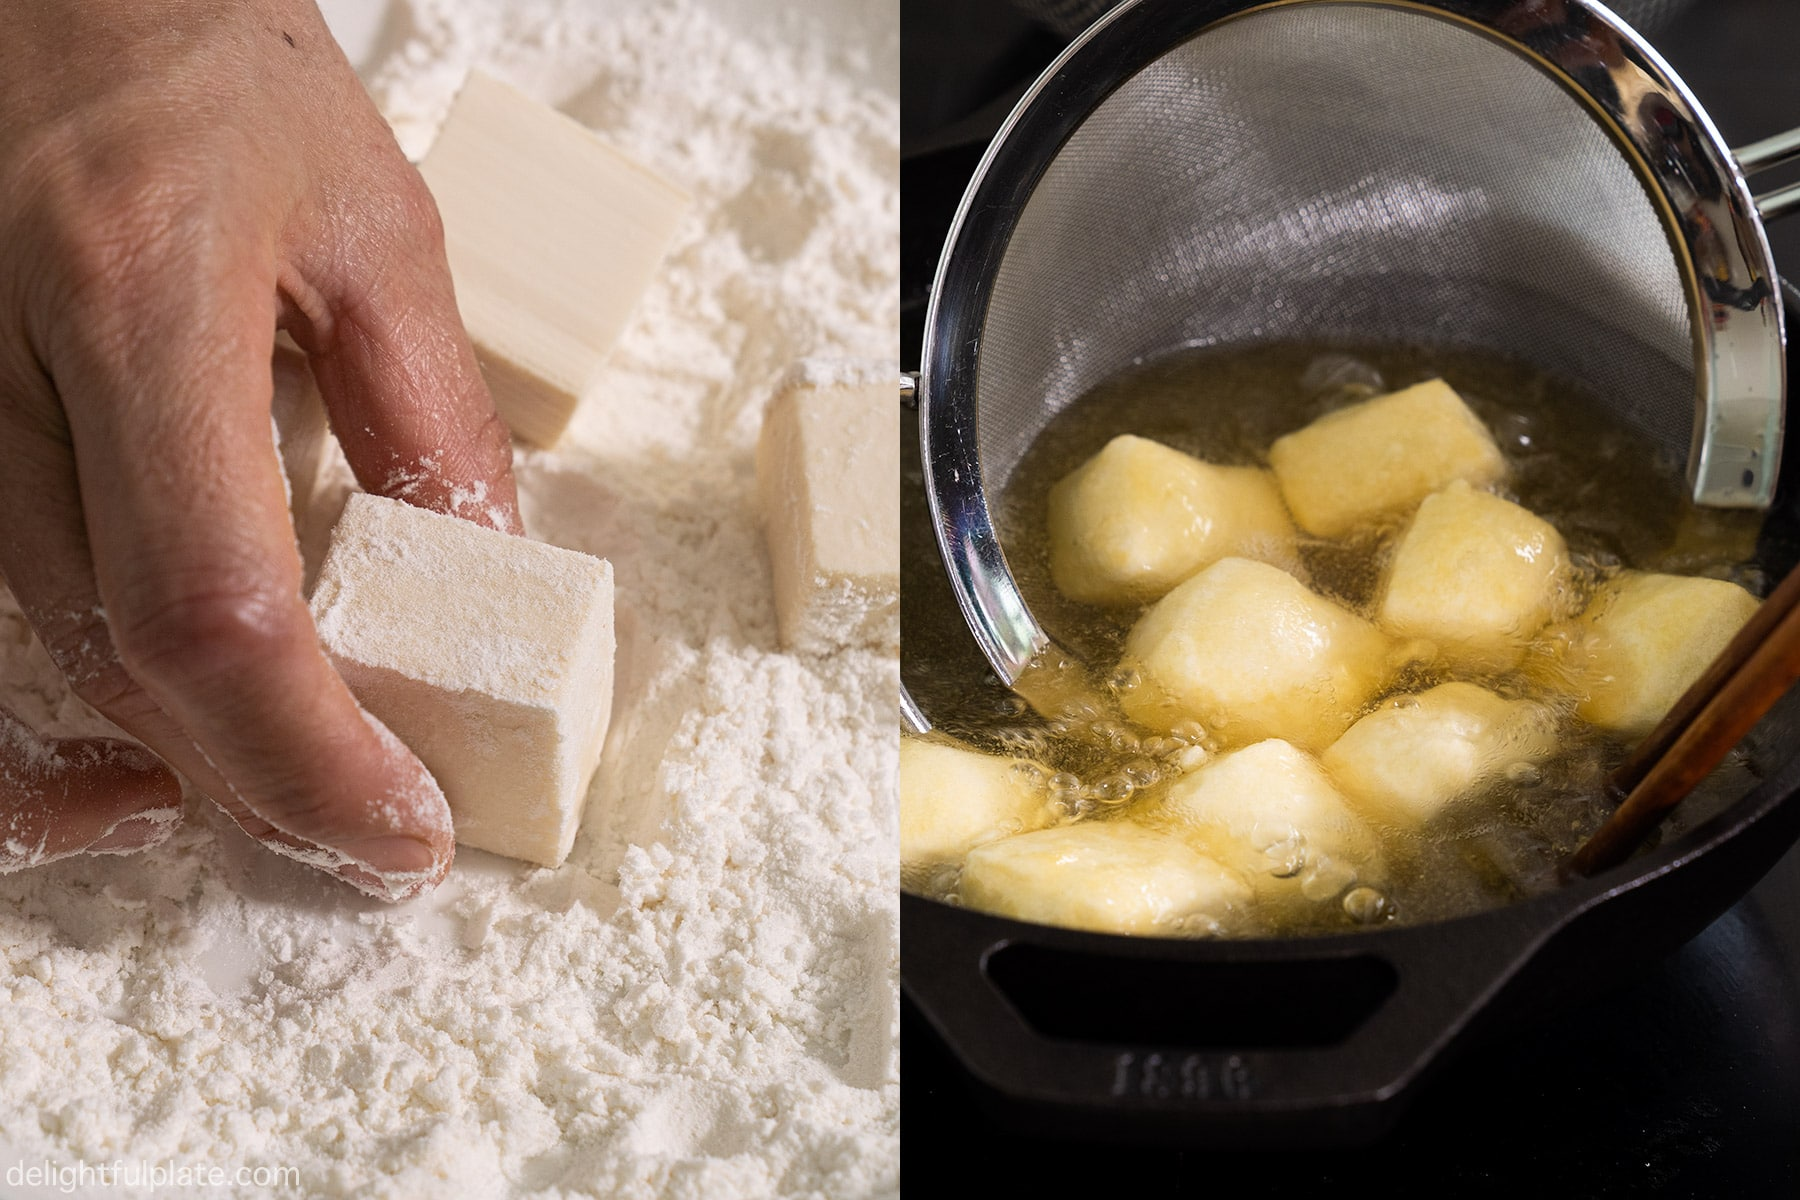 Step 3: coat the tofu with flour and deep fry